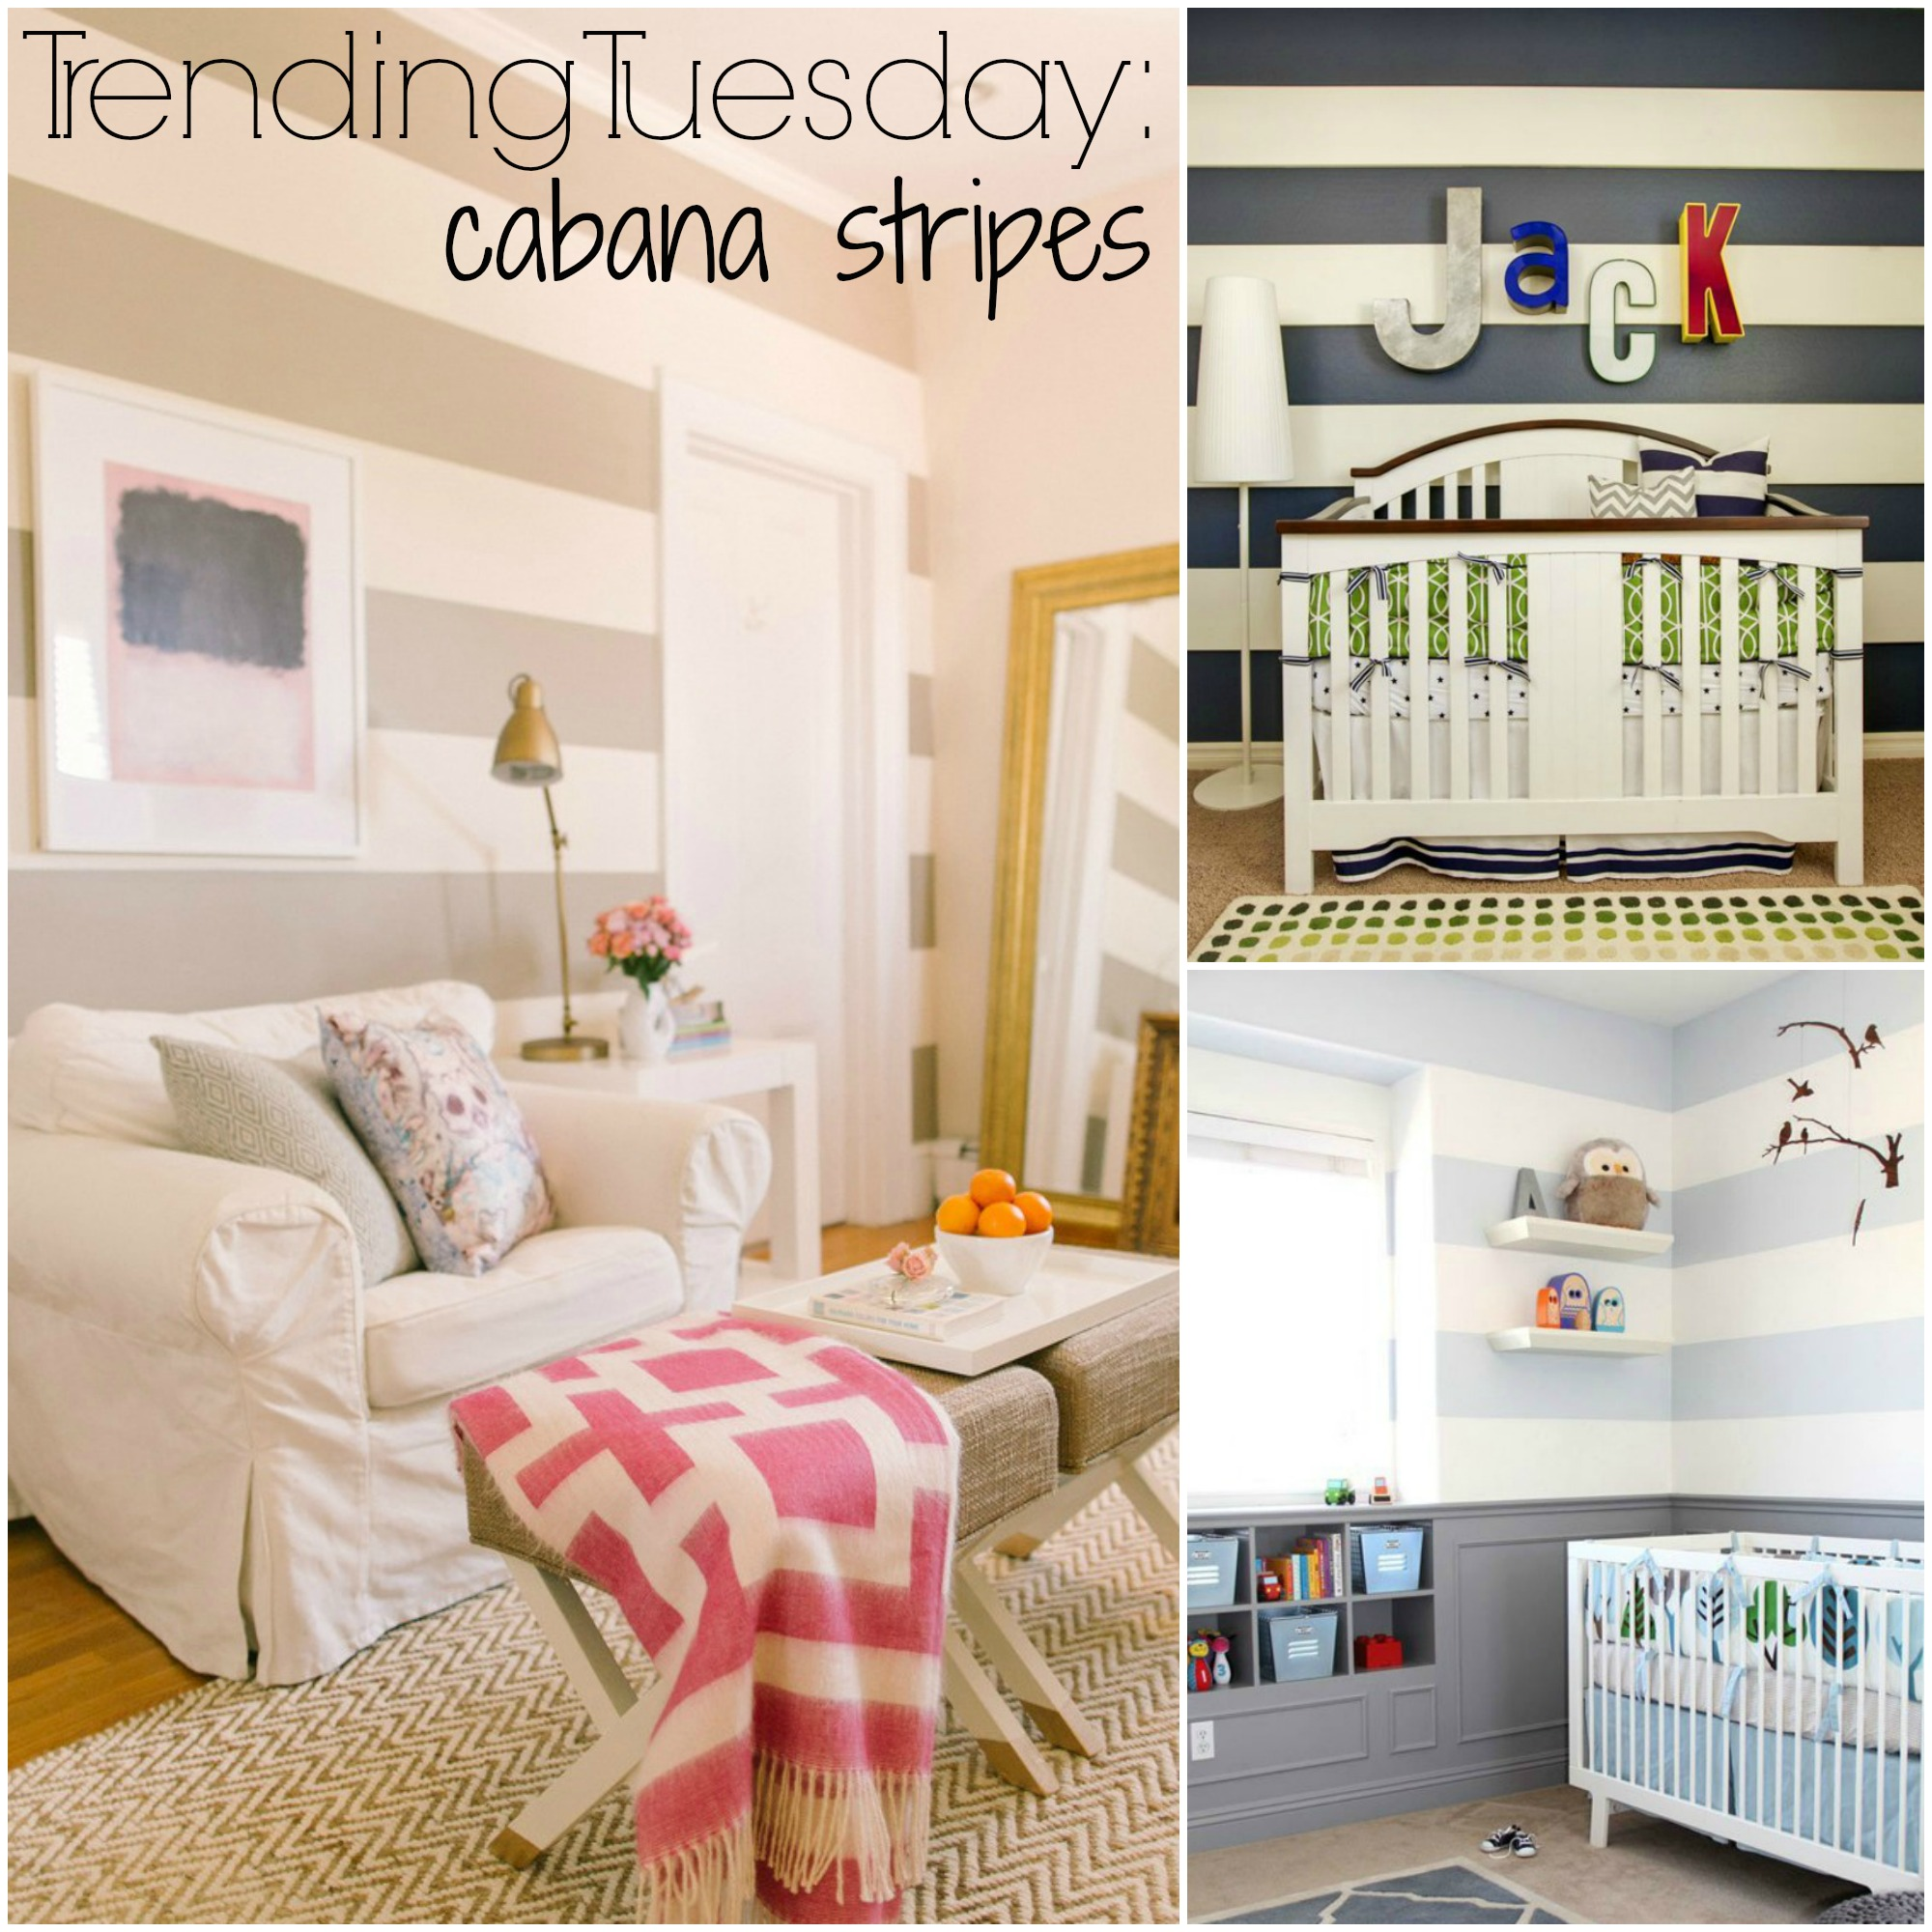 Striped Bedroom Paint Trending Tuesday Cabana Stripes How To Paint Horizontal Wall